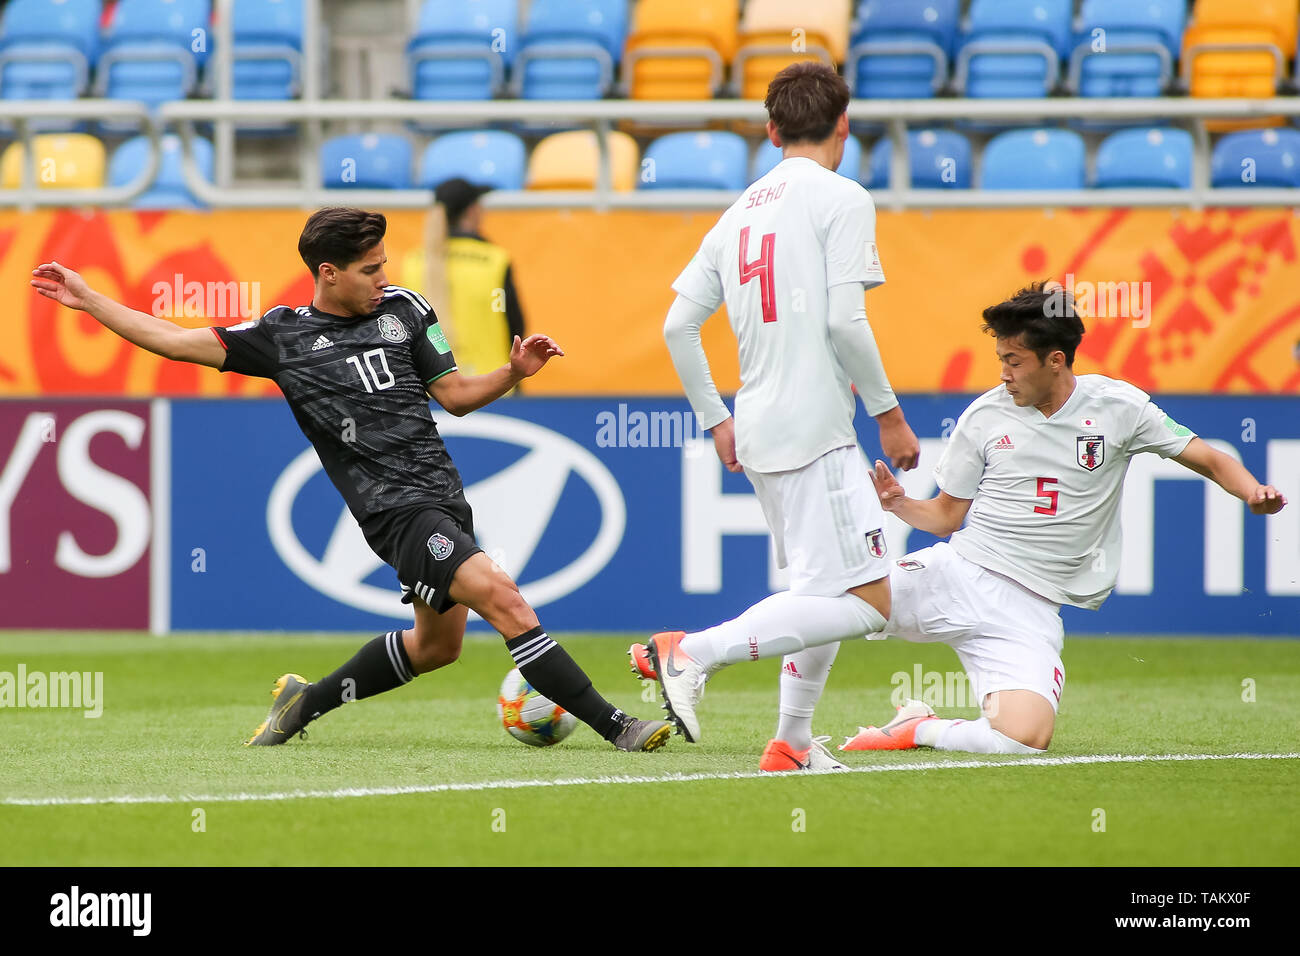 Gdynia Stadium, Gdynia, Poland - 26th May, 2019: Diego Lainez (L) from Mexico and Yukinari Sugawara (R), Ayumu Seko (C) from Japan seen in action during FIFA U-20 World Cup match between Mexico and Japan (GROUP B) in Gdynia. (Final score; Mexico 0:3 Japan) - Stock Image